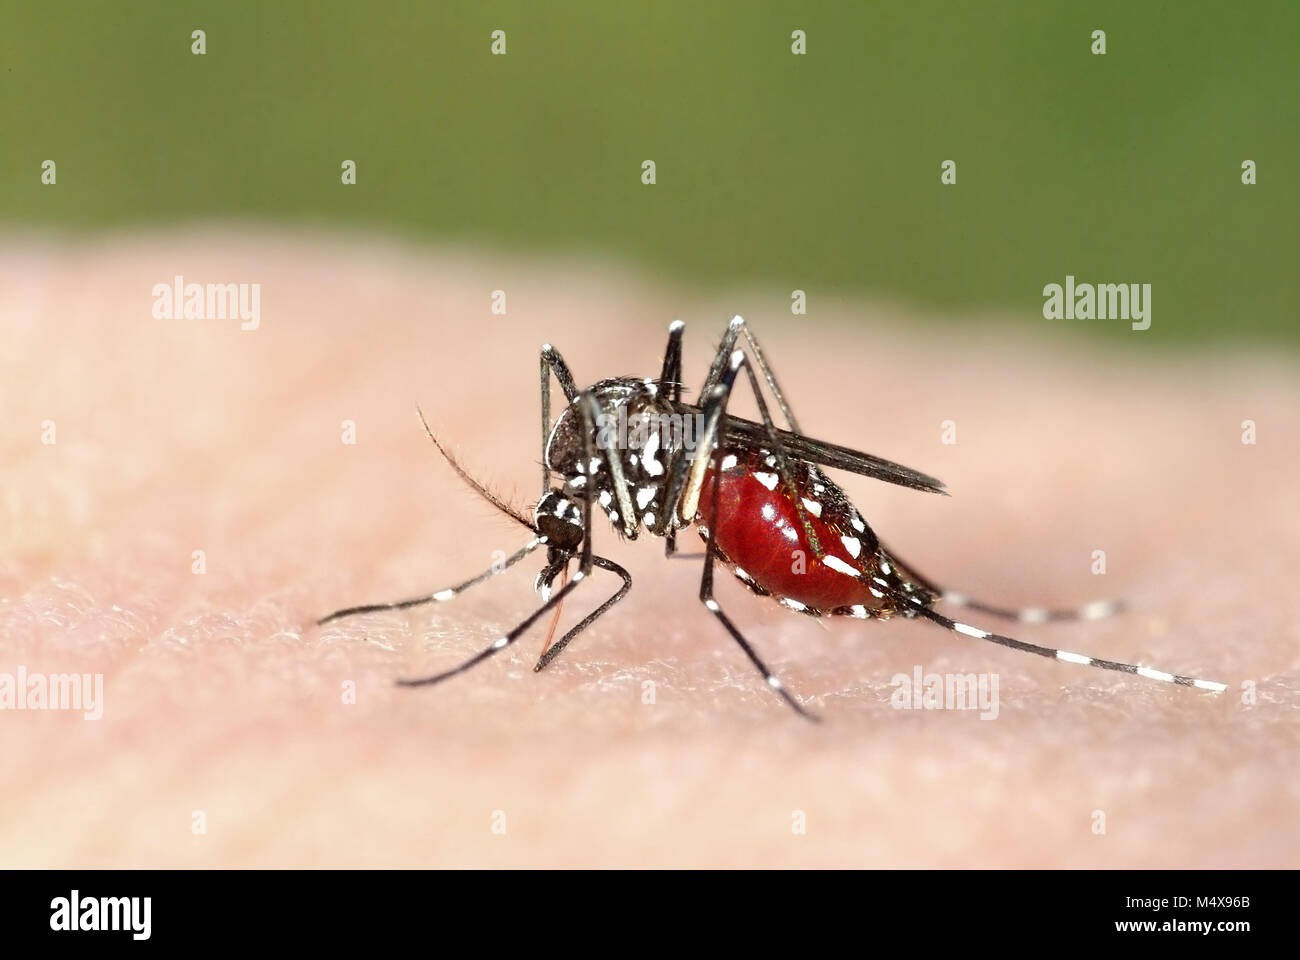 Tiger mosquito (Aedes albopictus) full of blood, an alien species spreading exotic diseases in Europe - Stock Image